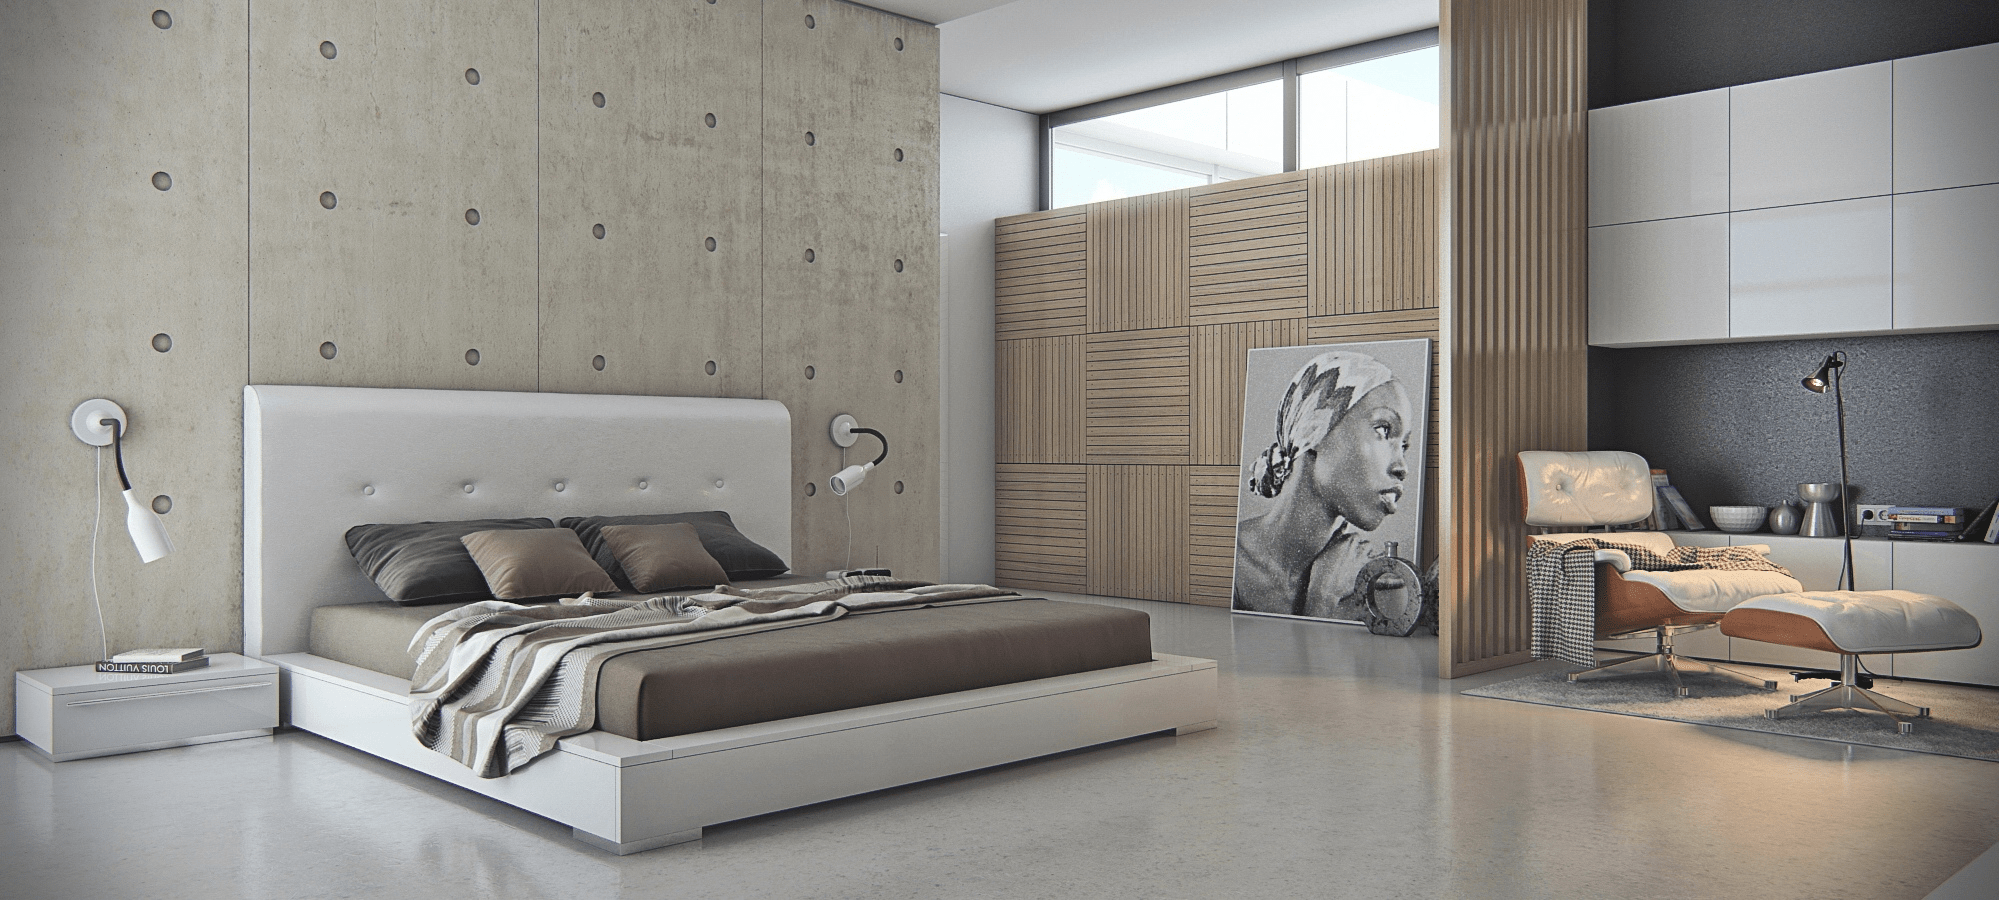 Large concrete wall tiles for bedroom